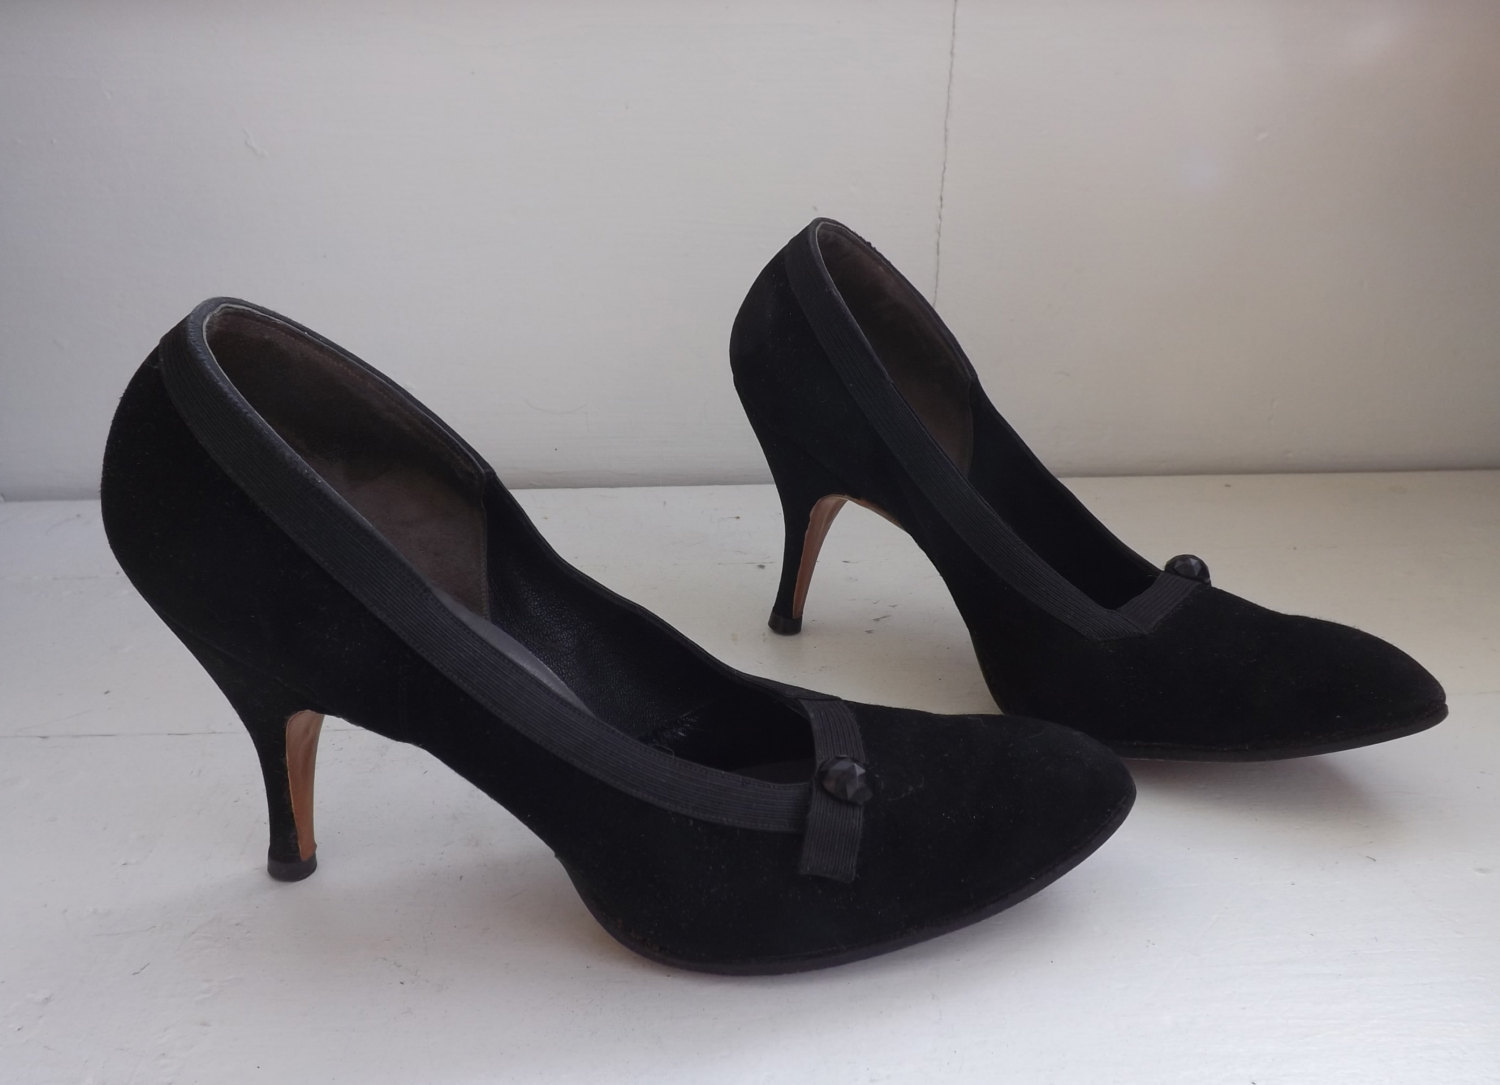 3729e6a4759d Vintage 1950s Shoes Black Heels 50s 6 Narrow and 50 similar items. Il  fullxfull.714698801 embb